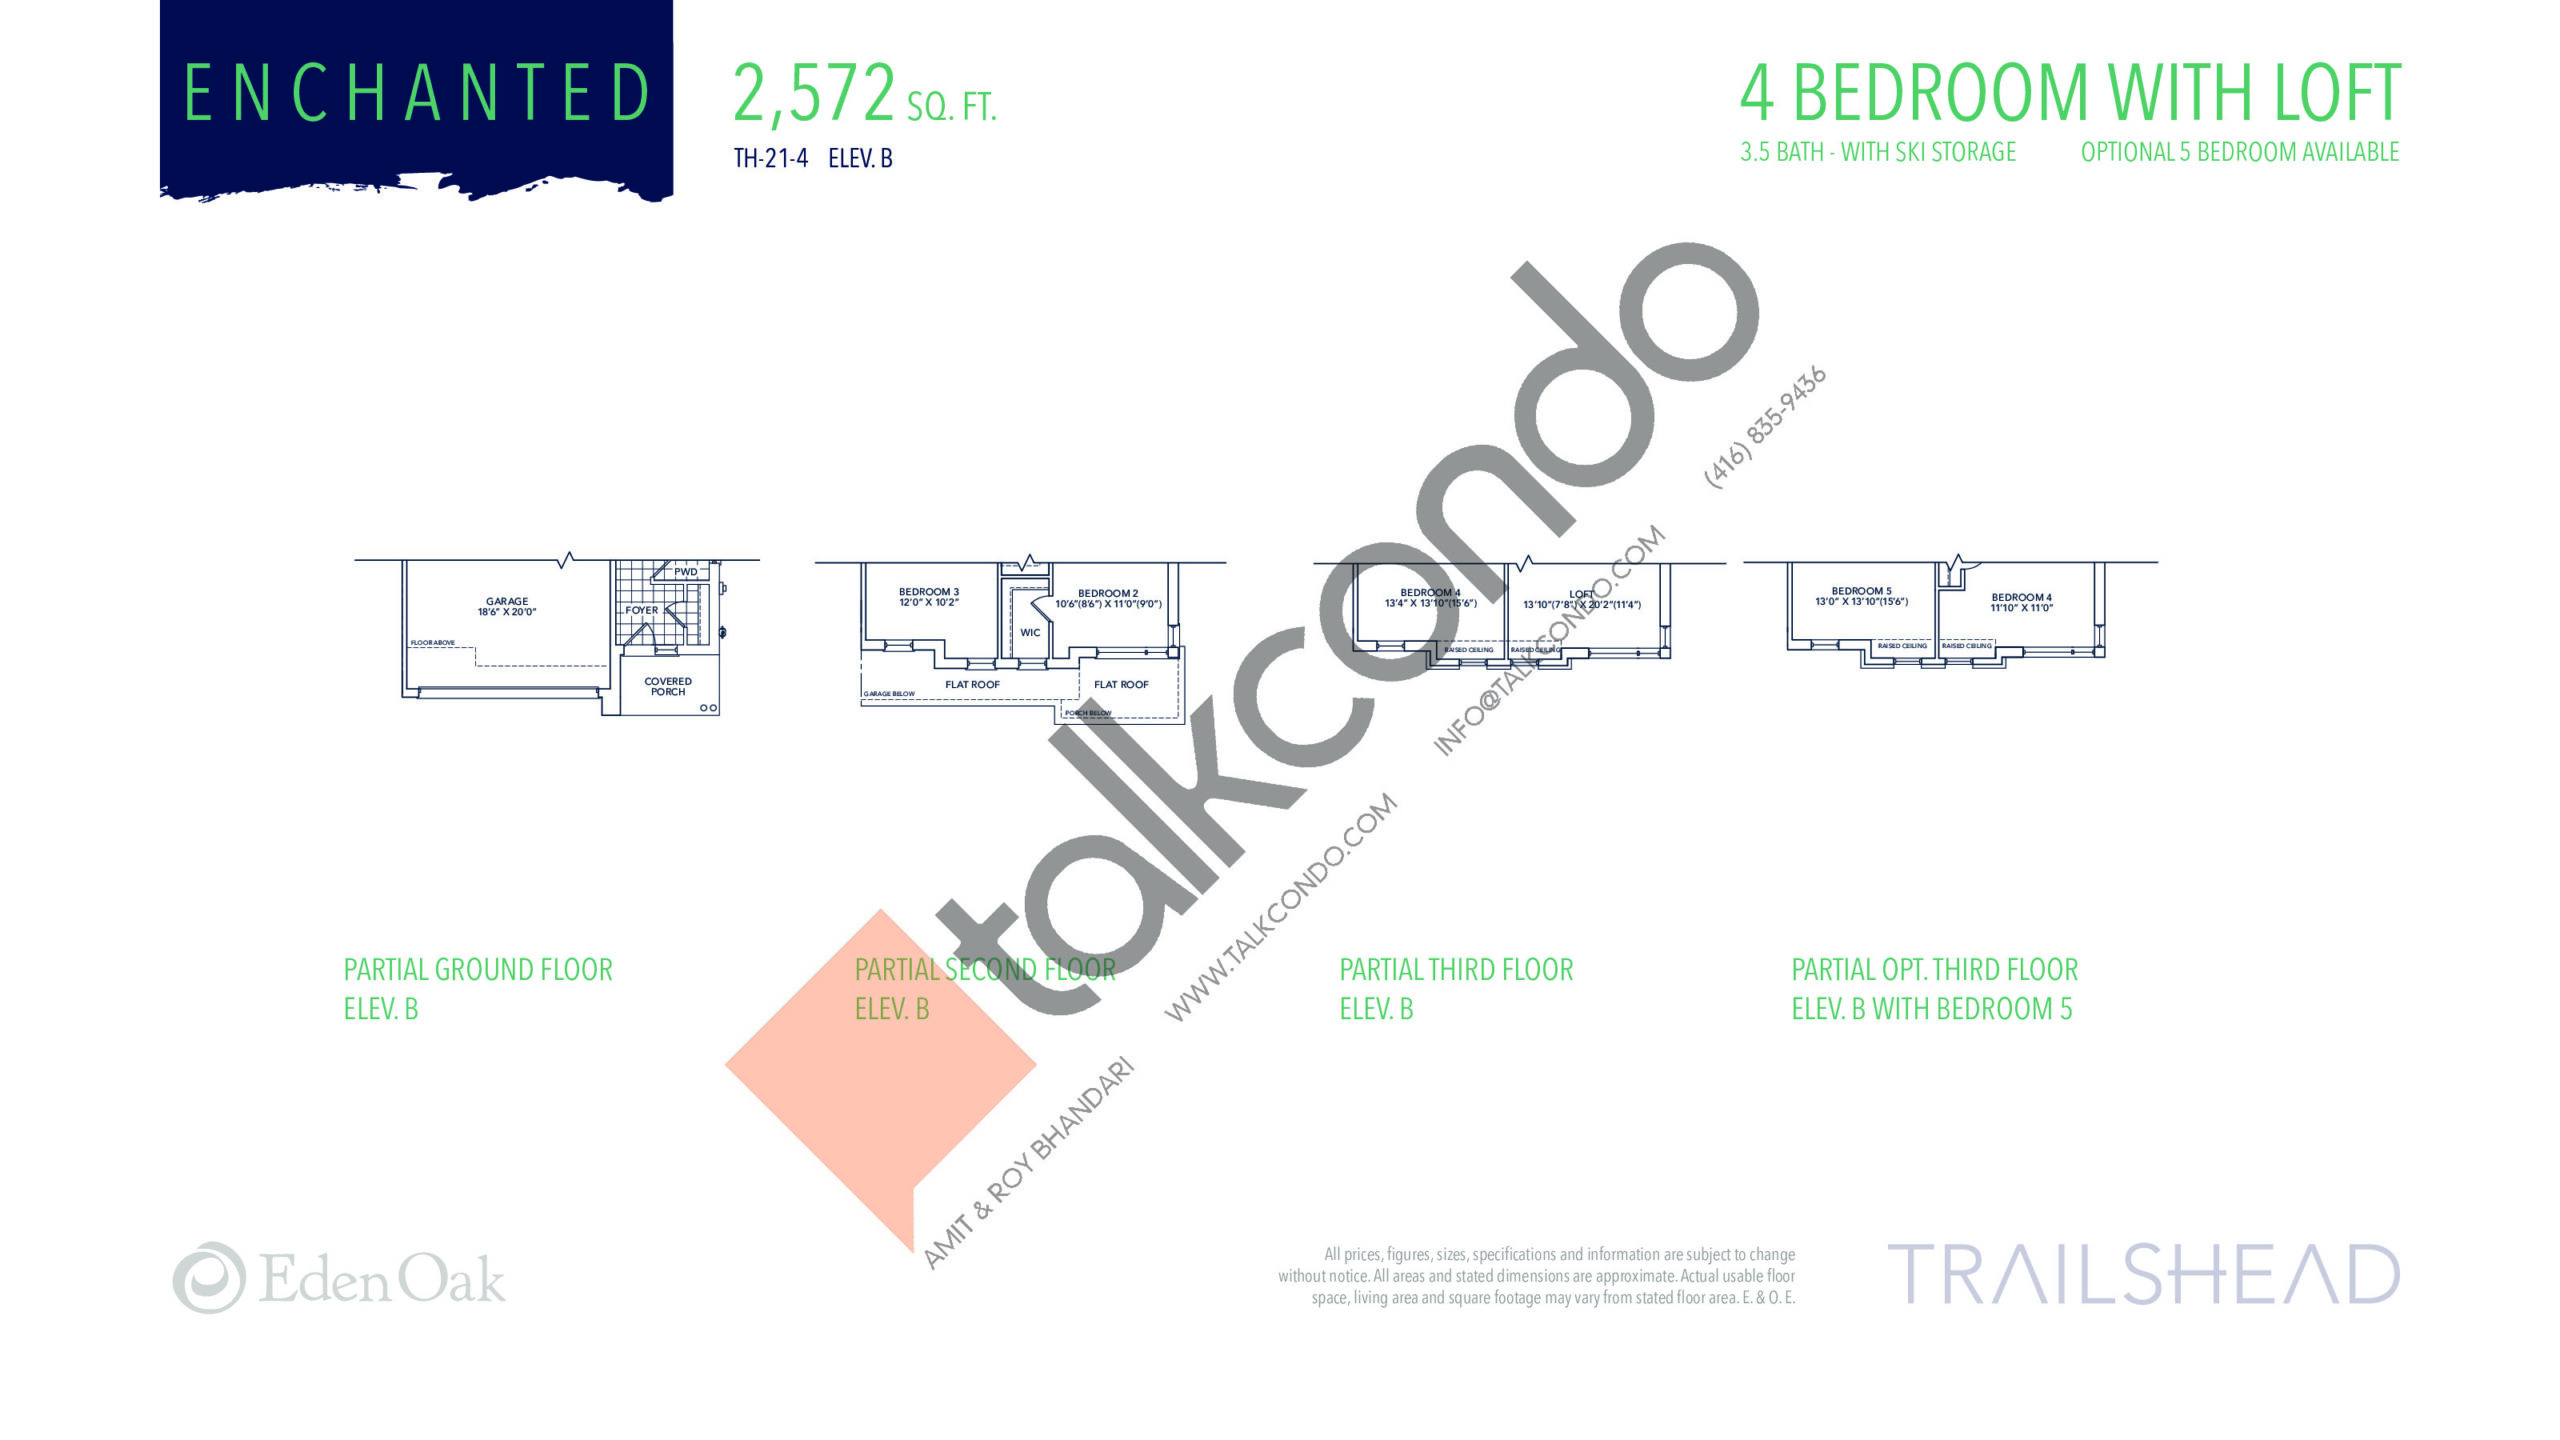 Enchanted (2/2) Floor Plan at Trailshead Towns - 2572 sq.ft